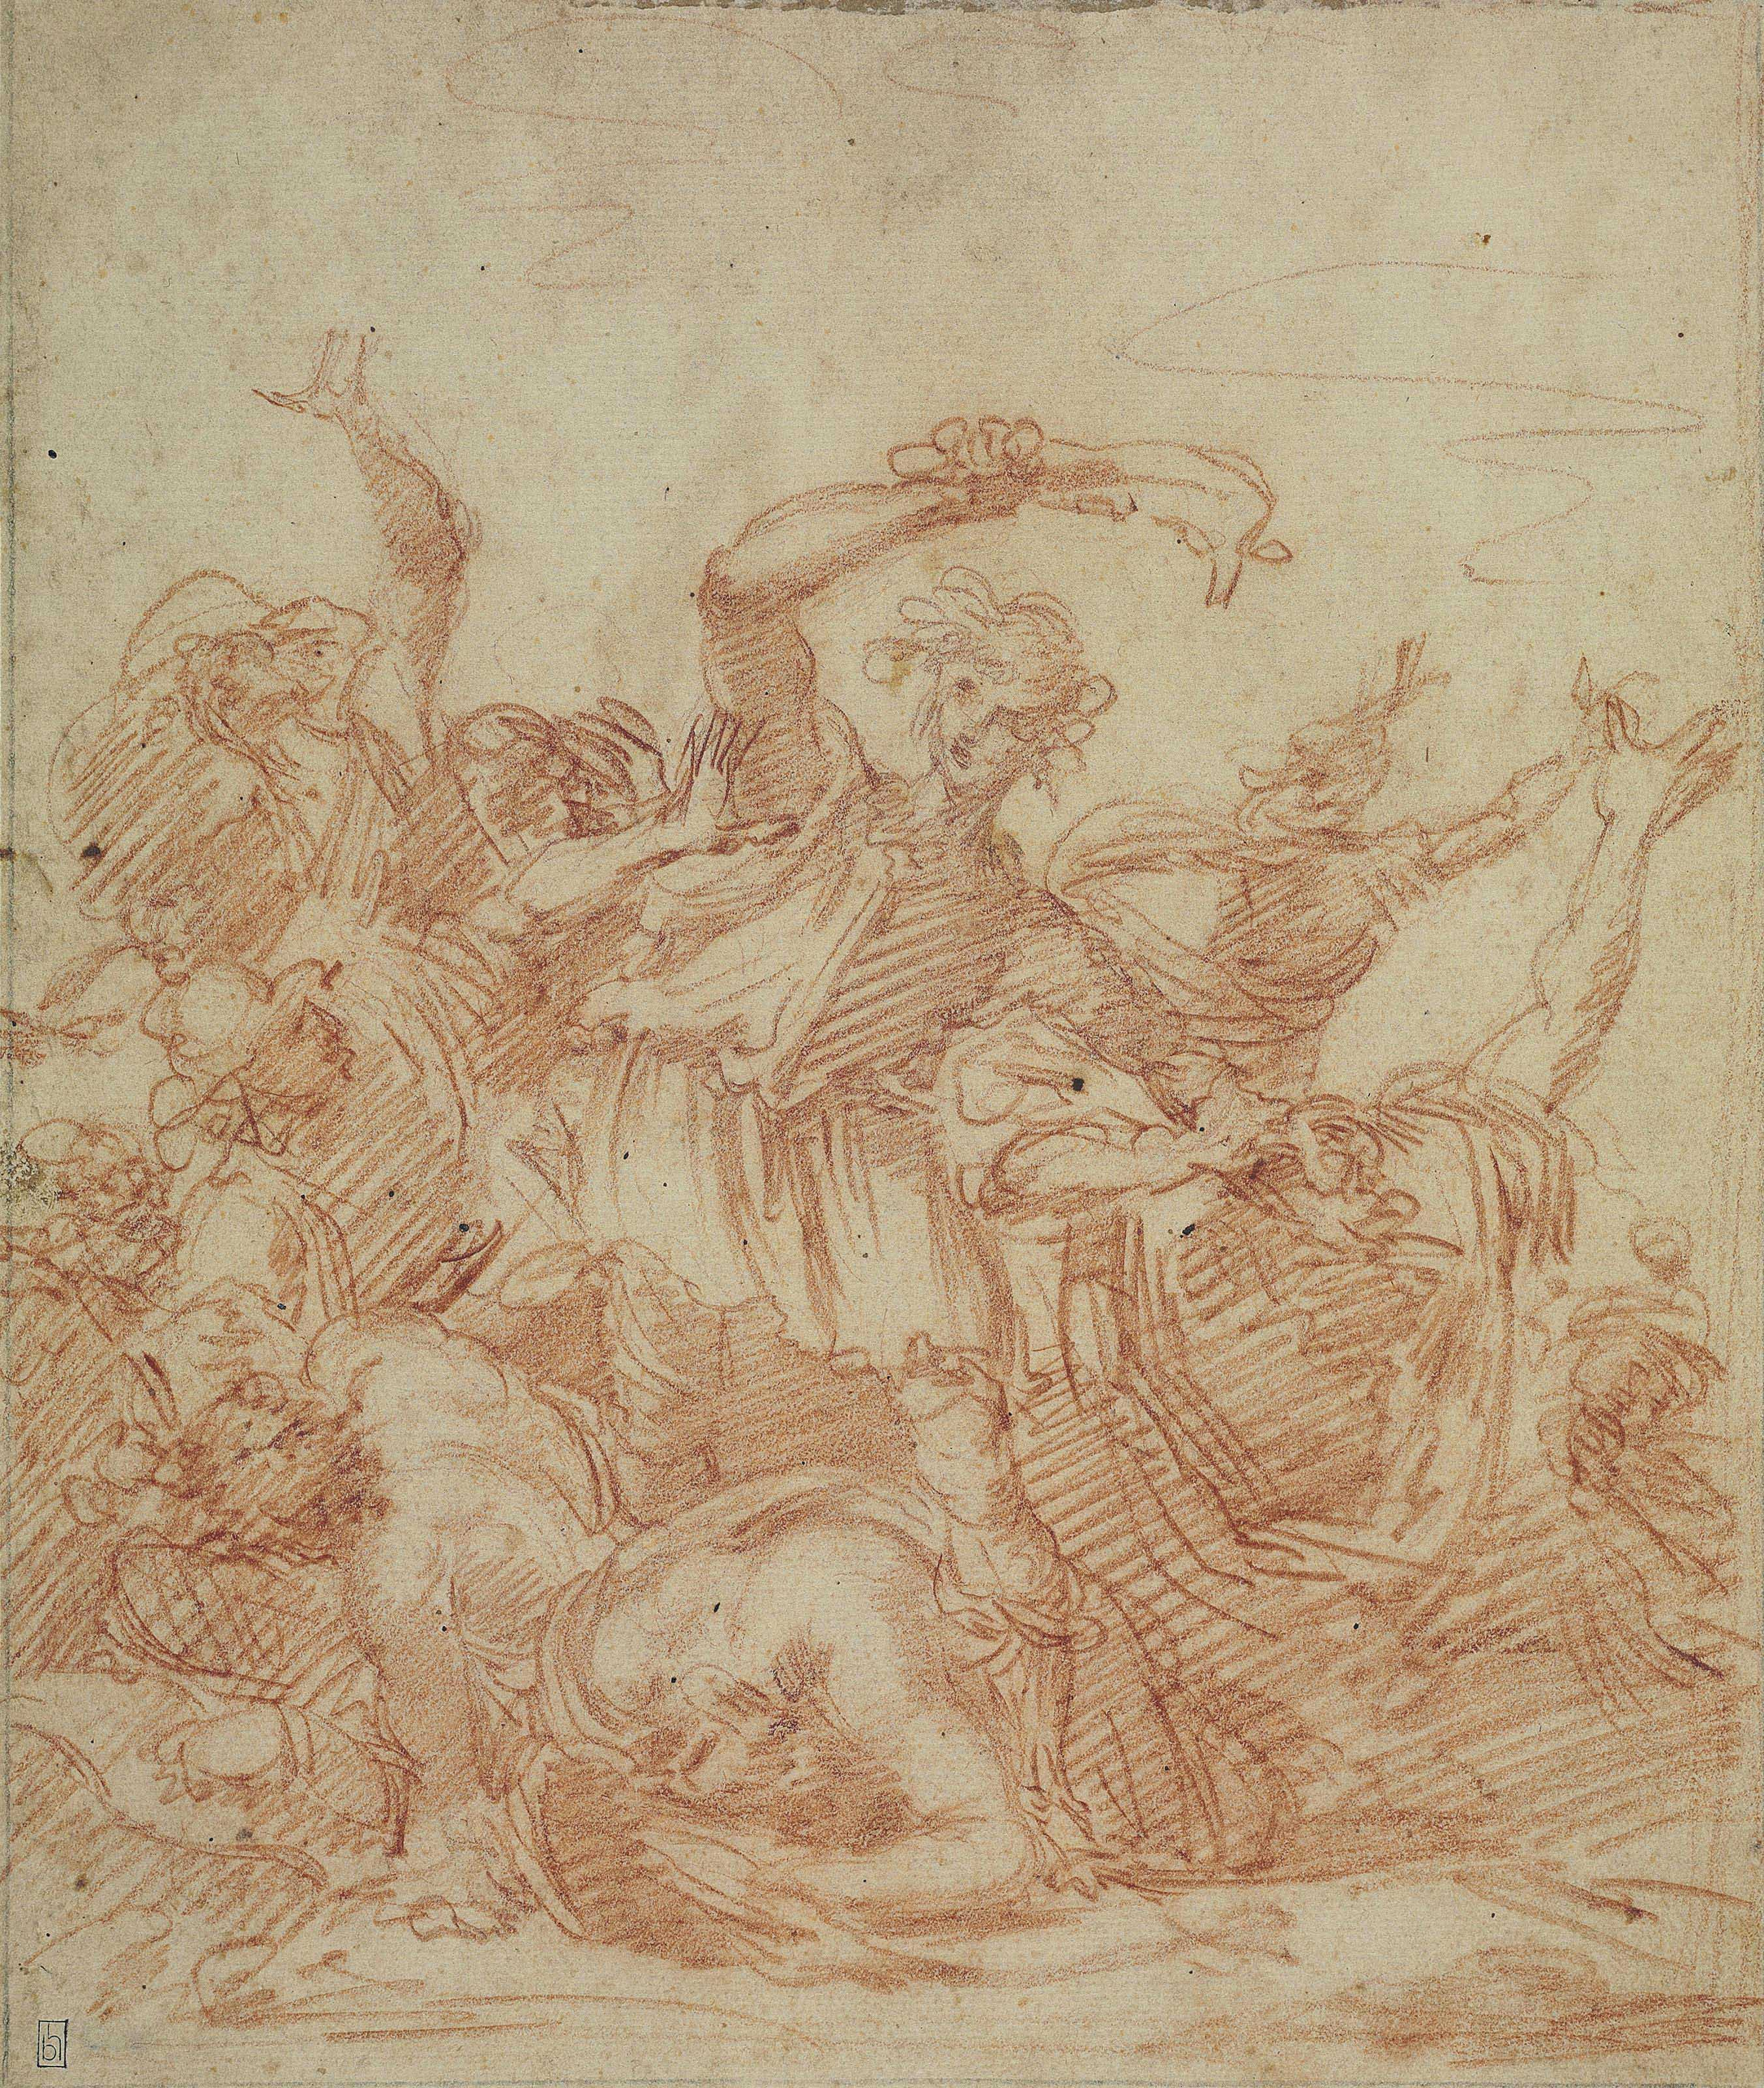 Samson slaying the Philistines with the Jawbone of an Ass